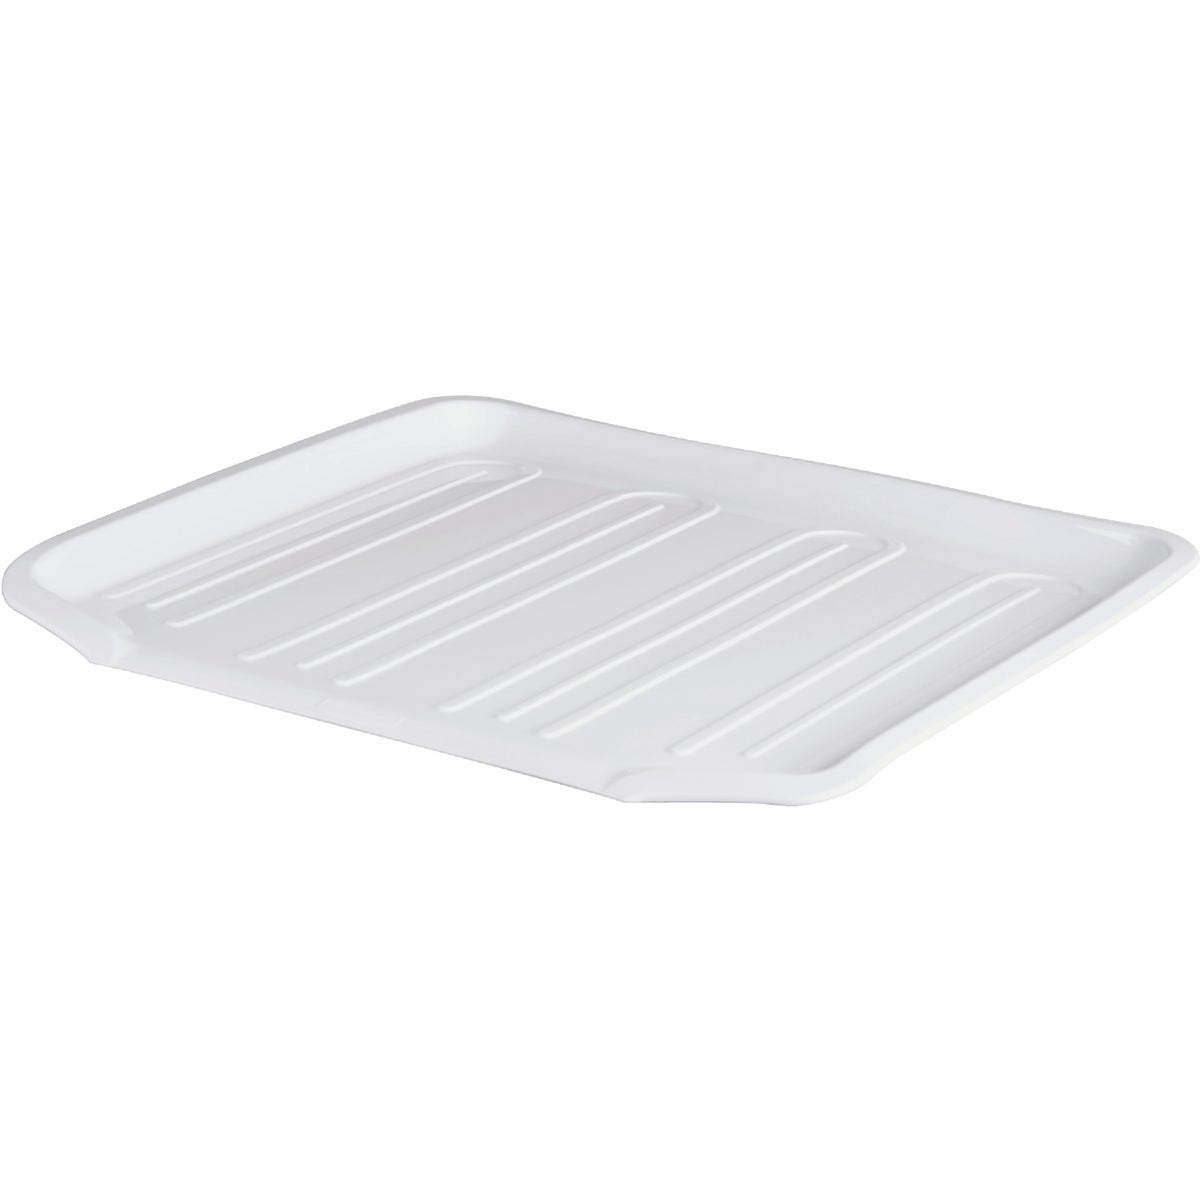 WHITE DRAINER TRAY - 1180MAWHT by Rubbermaid Home